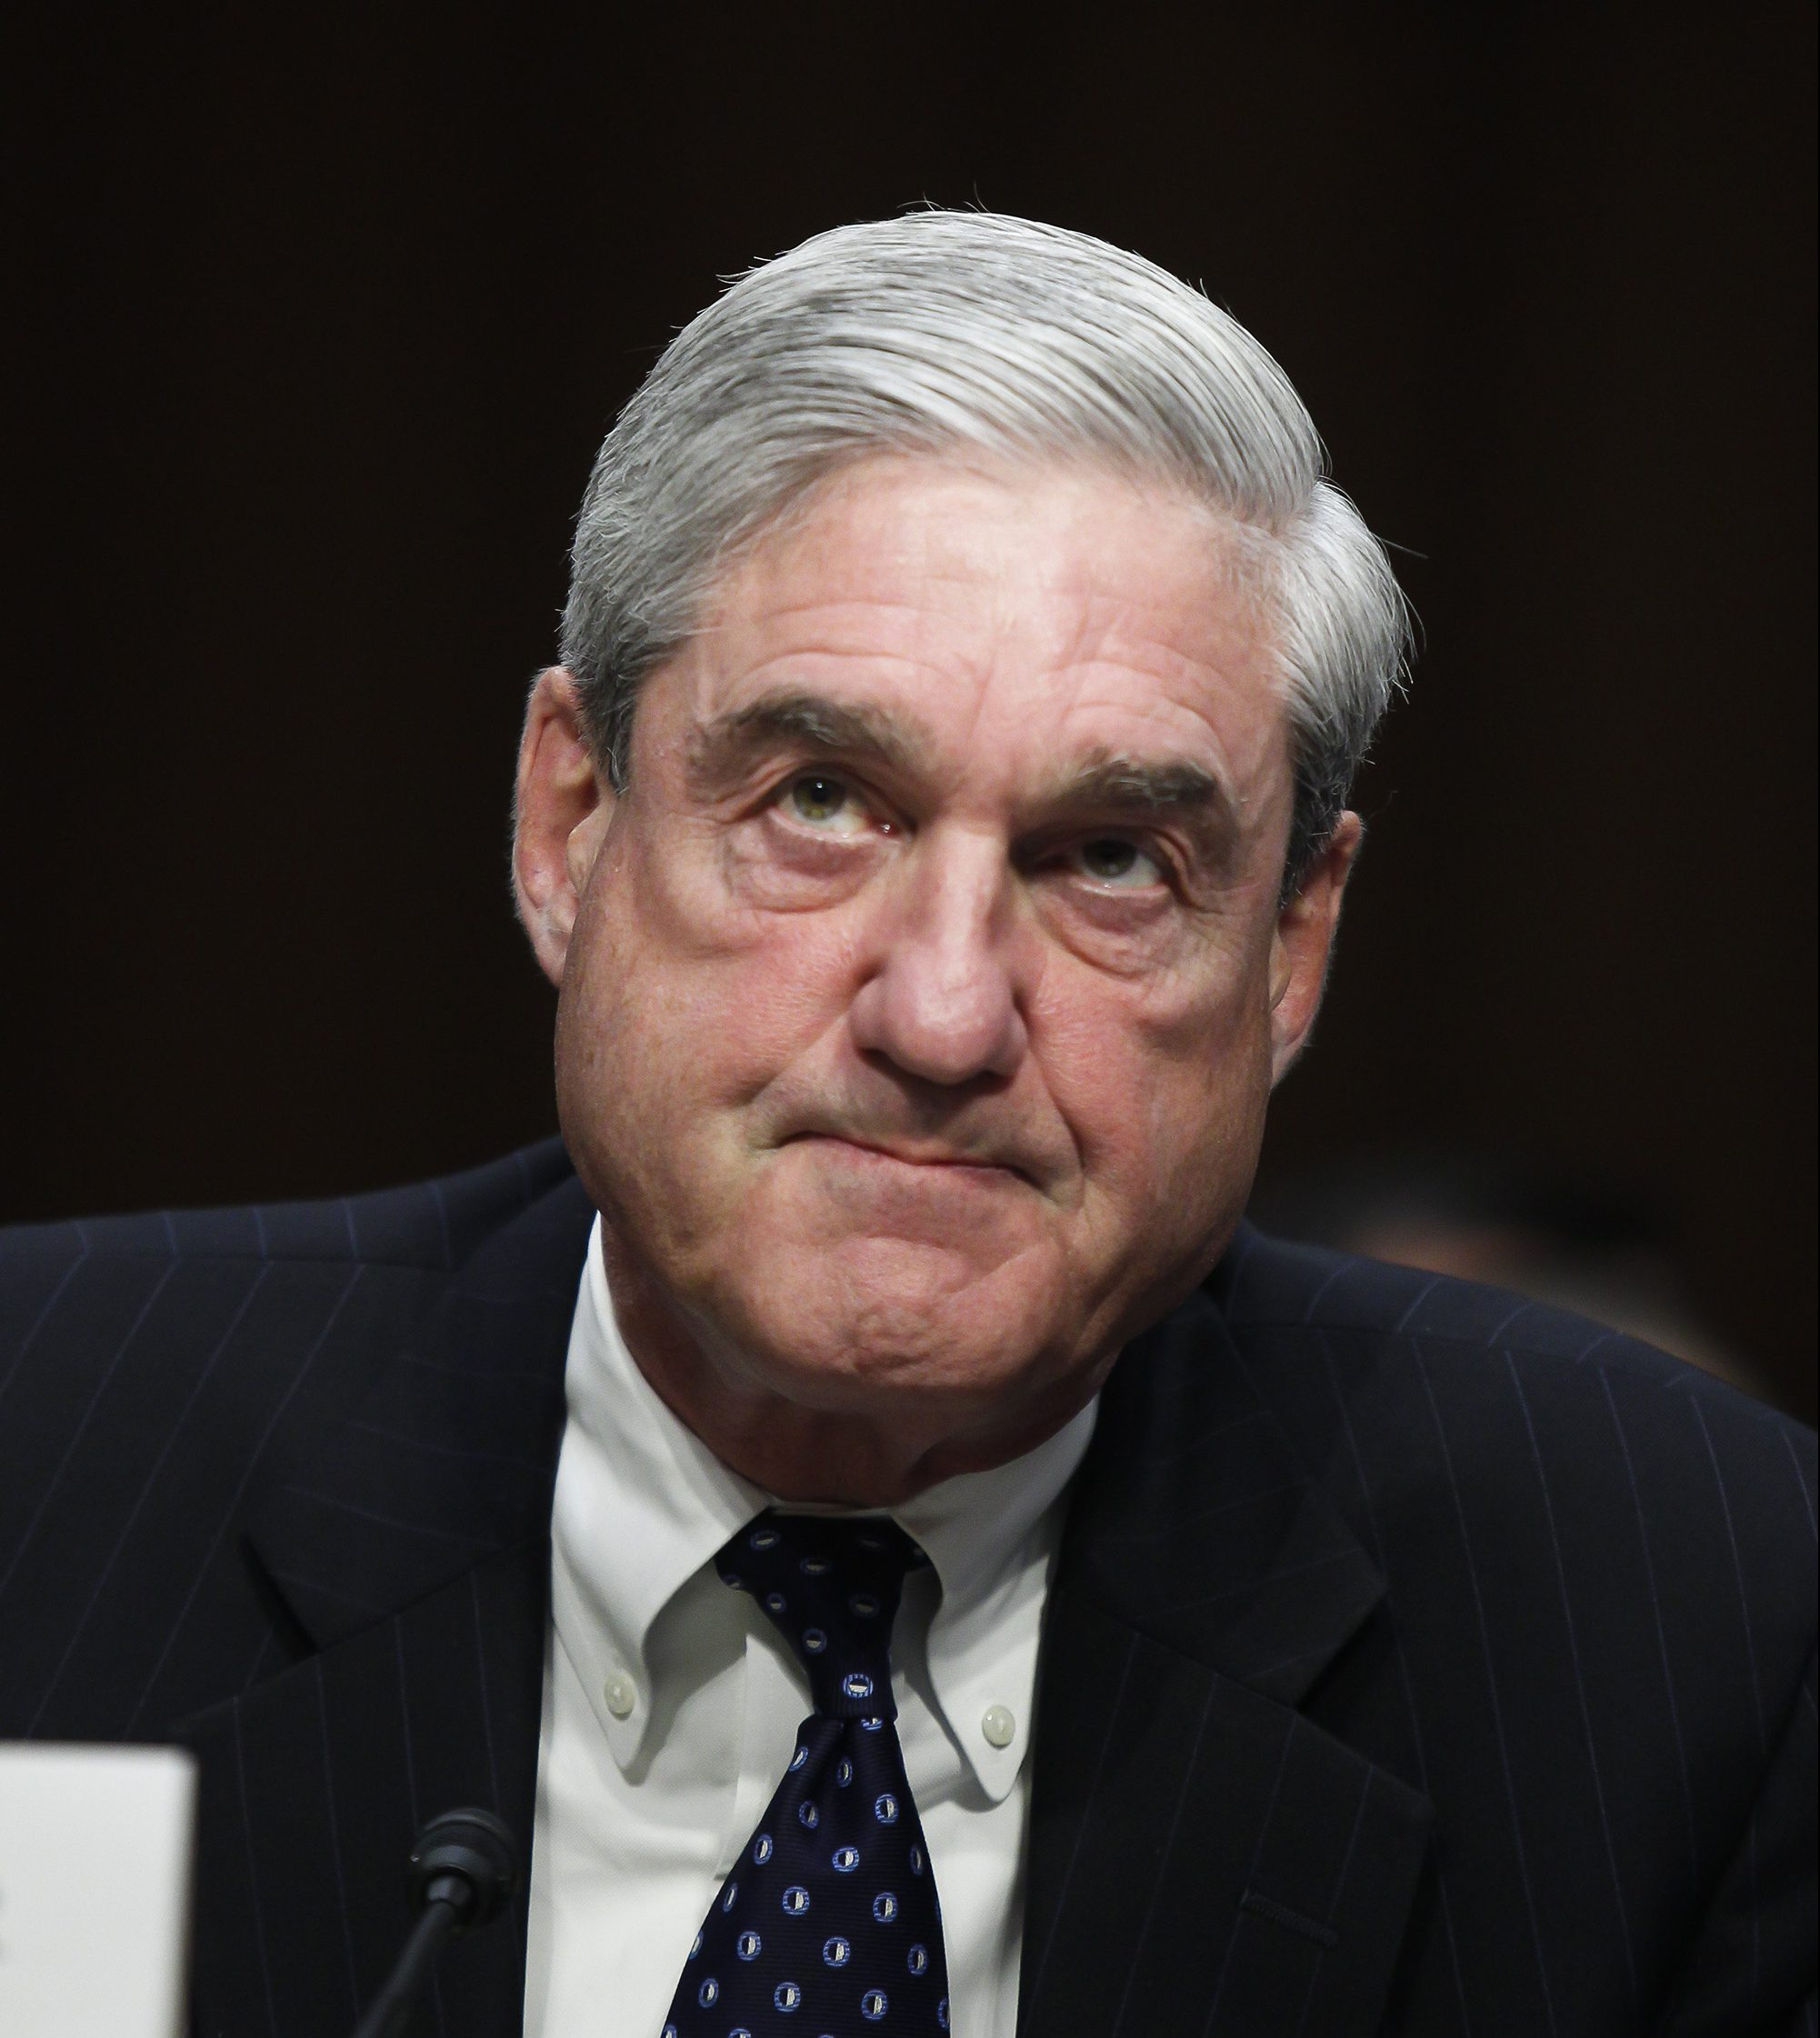 Ex Clinton Prosecutor Robert Mueller Can T Trump: GOP Lawmakers Call For 'hopelessly Compromised' Mueller To